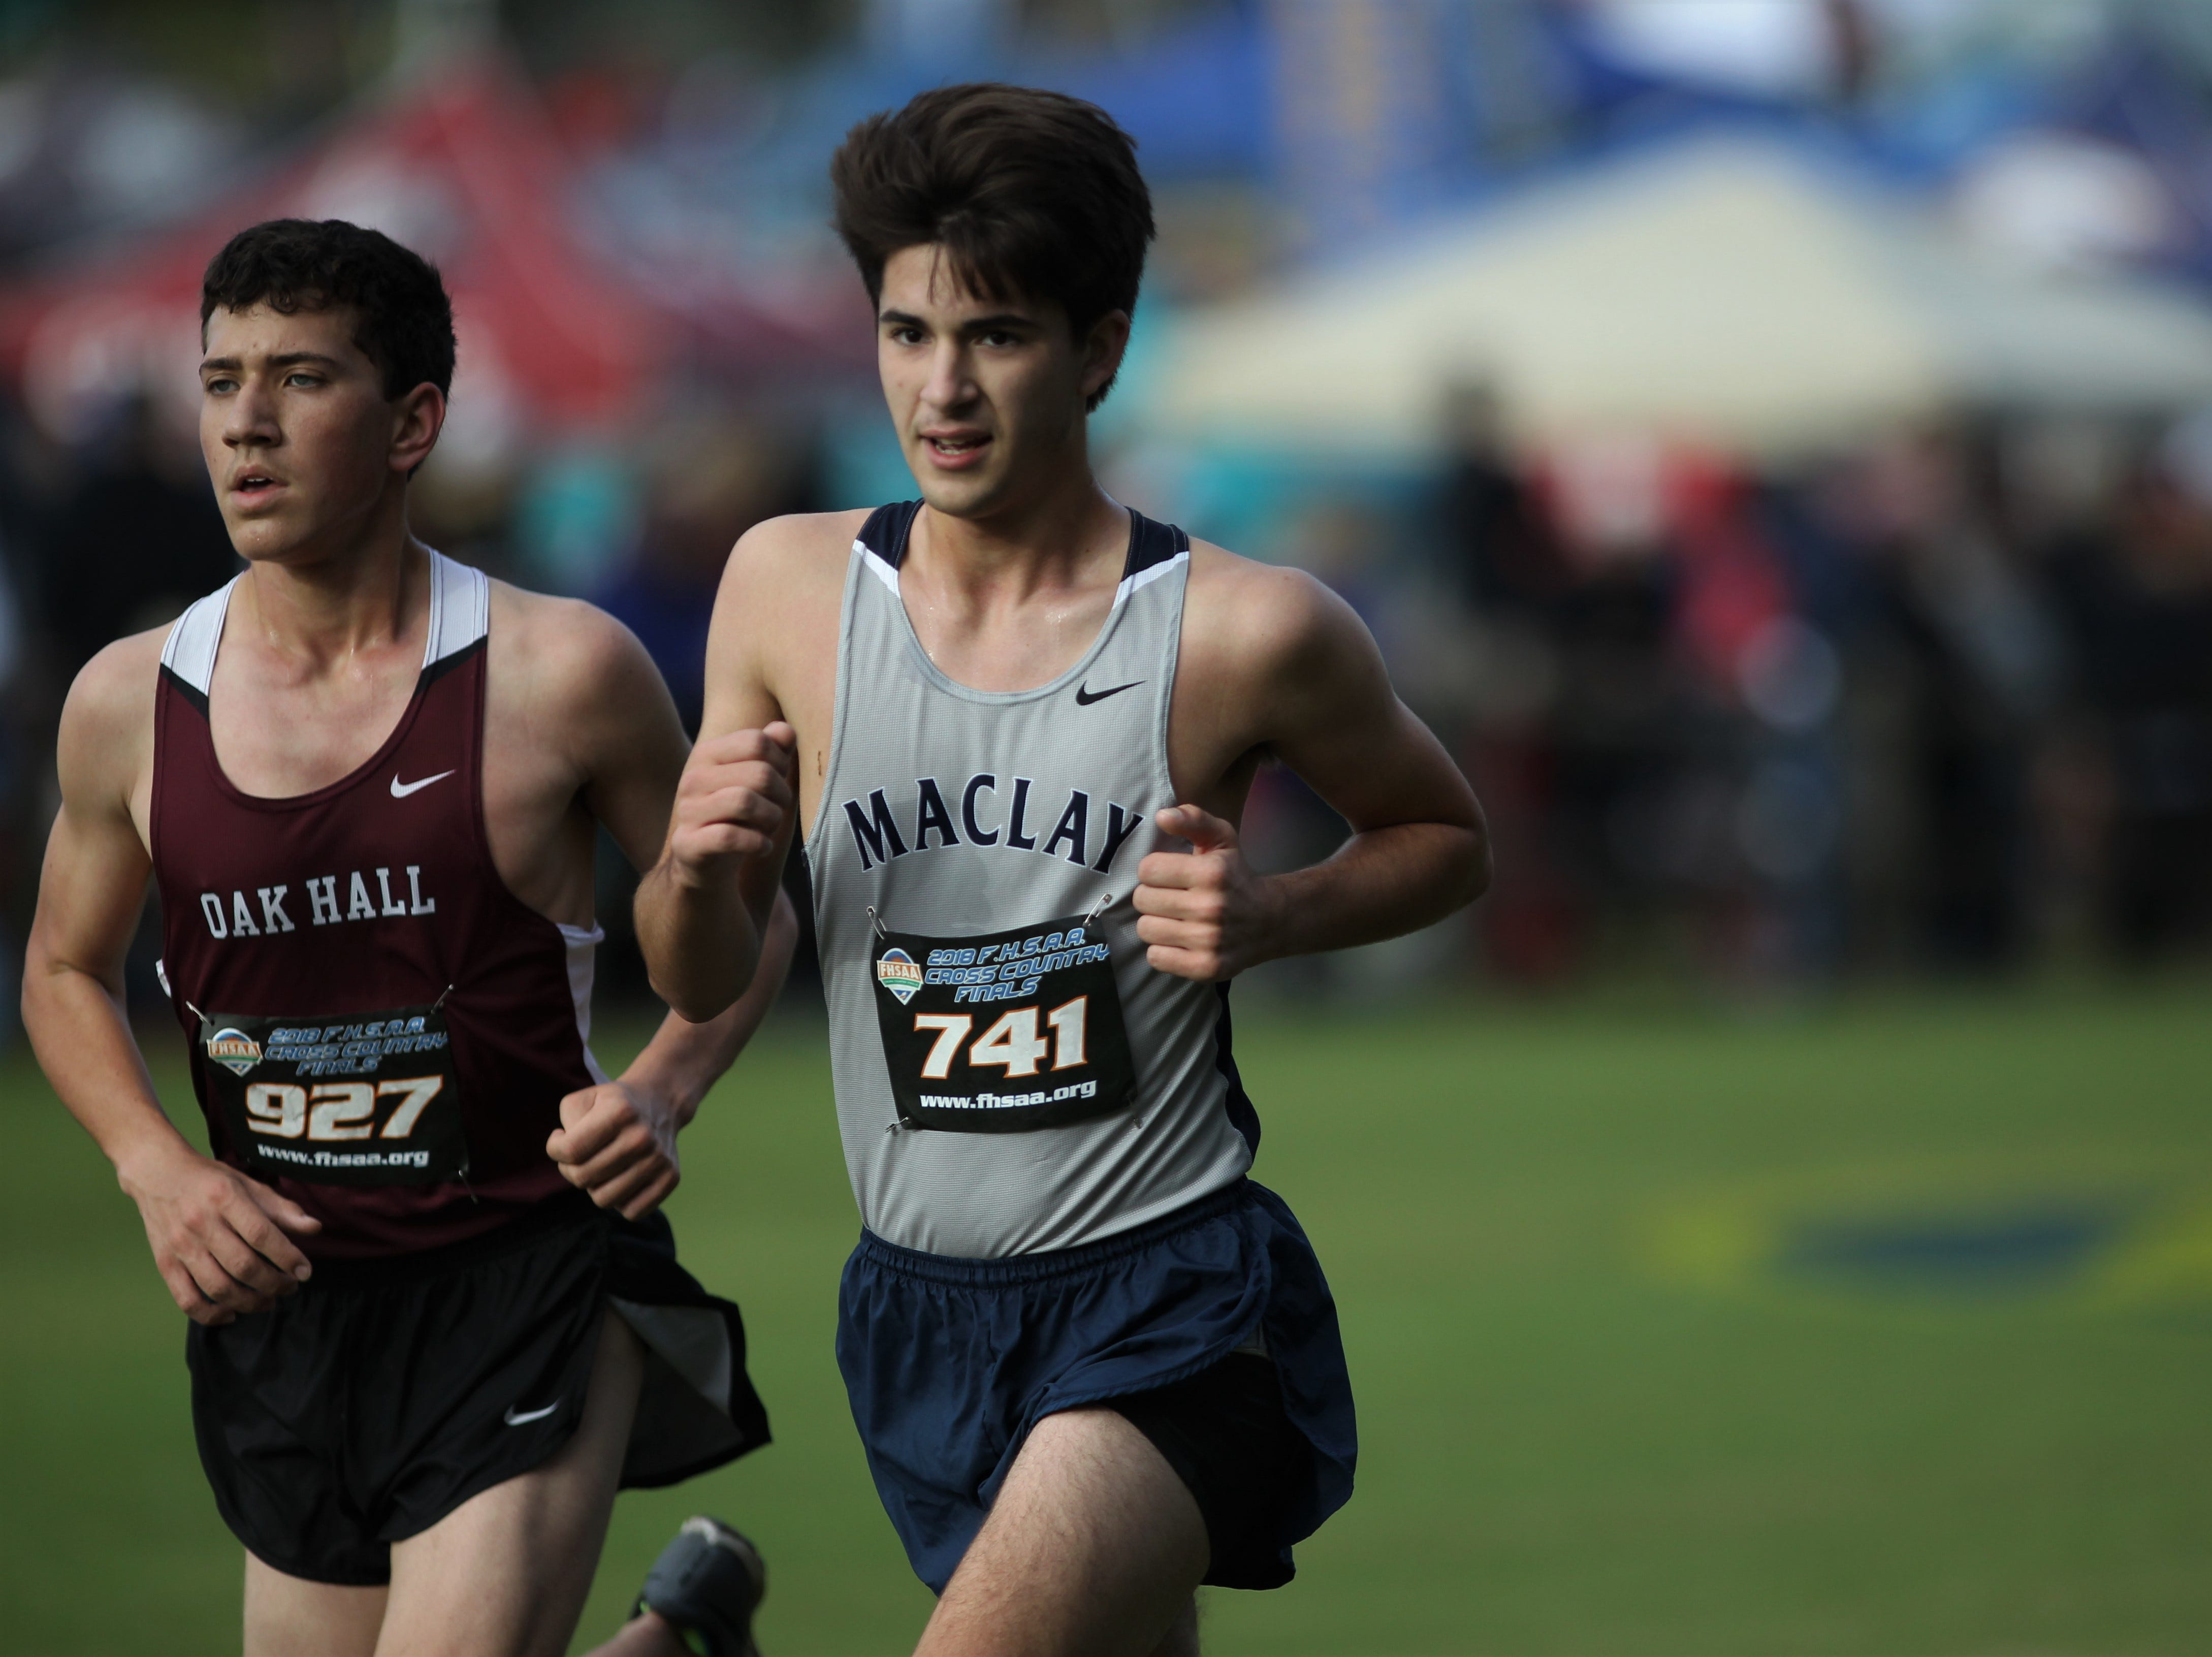 FHSAA Cross Country State Championships at Apalachee Regional Park on Saturday, Nov. 10, 2018.